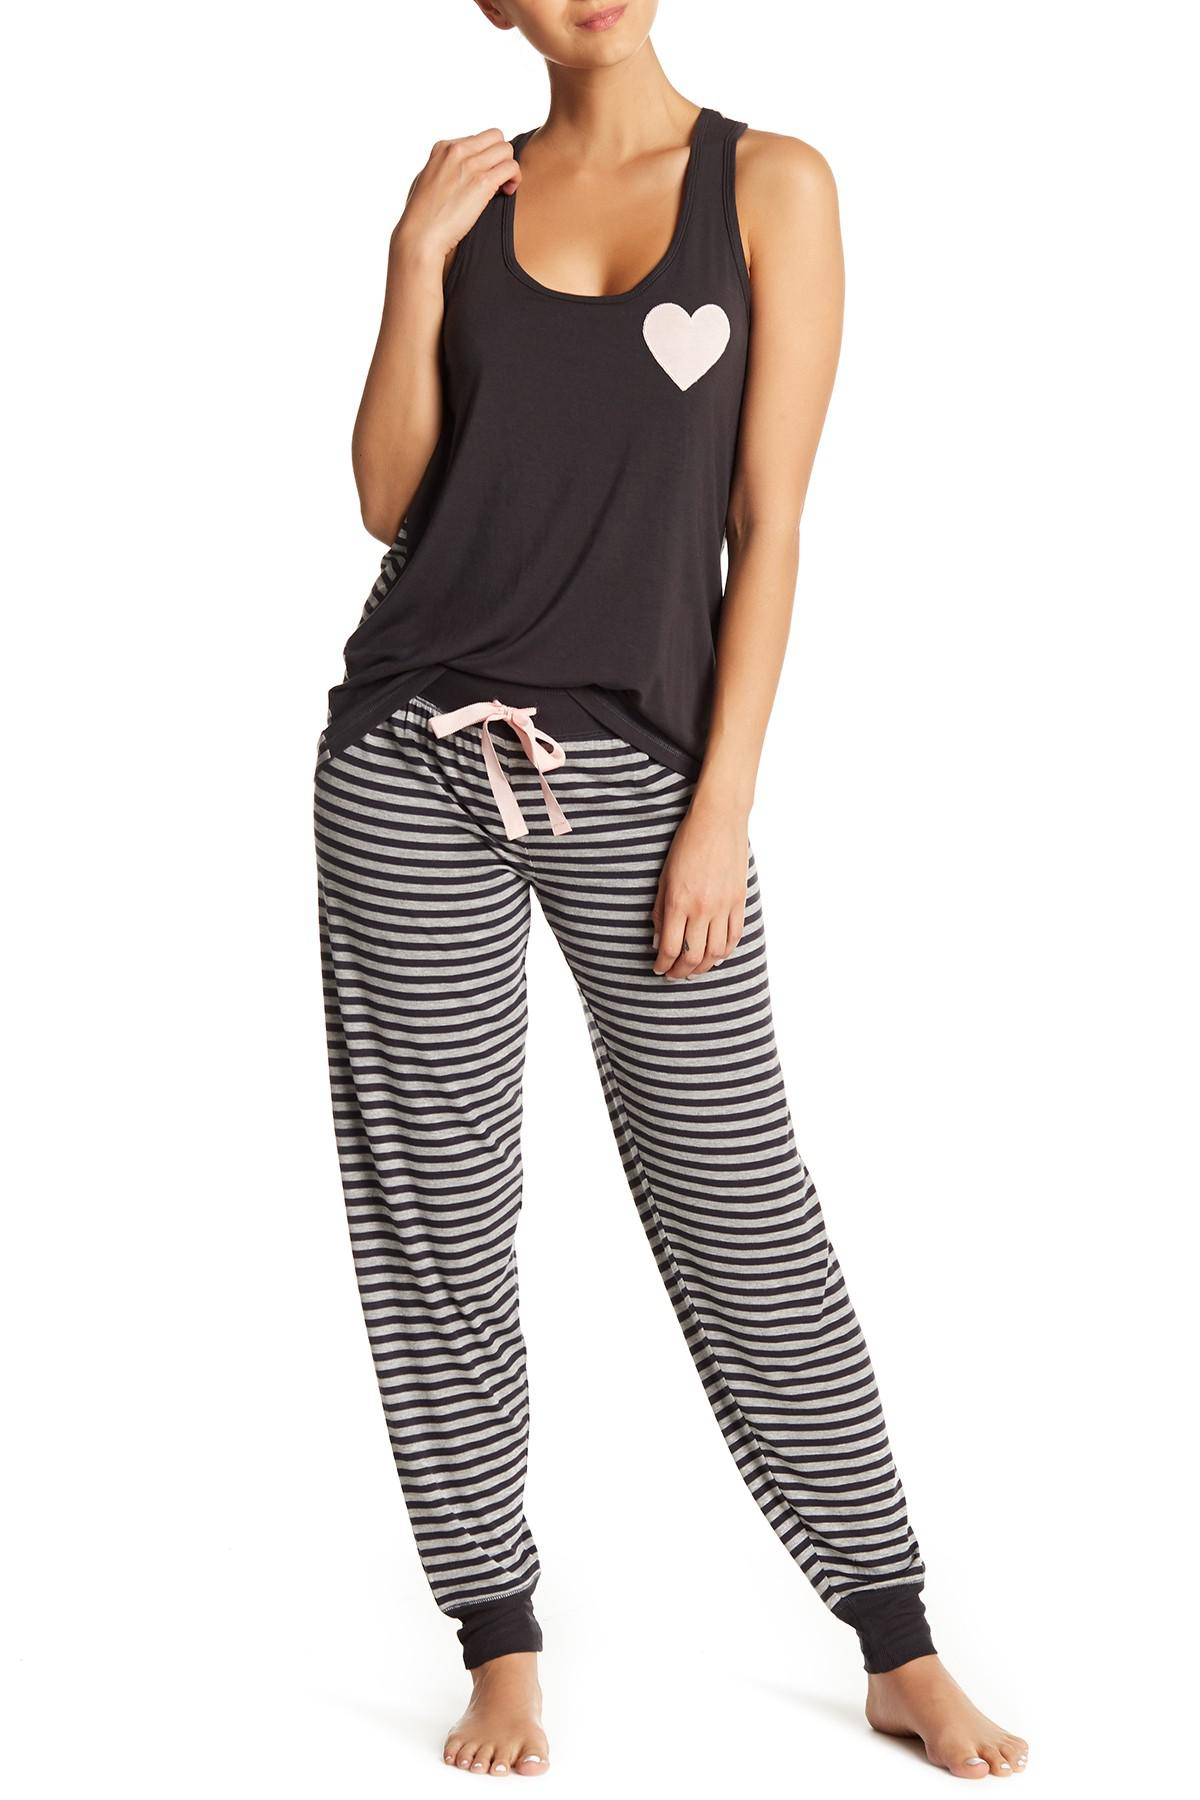 a12bf57a10 Lyst - Pj Salvage Beauty Queen Pajama Pants in Black